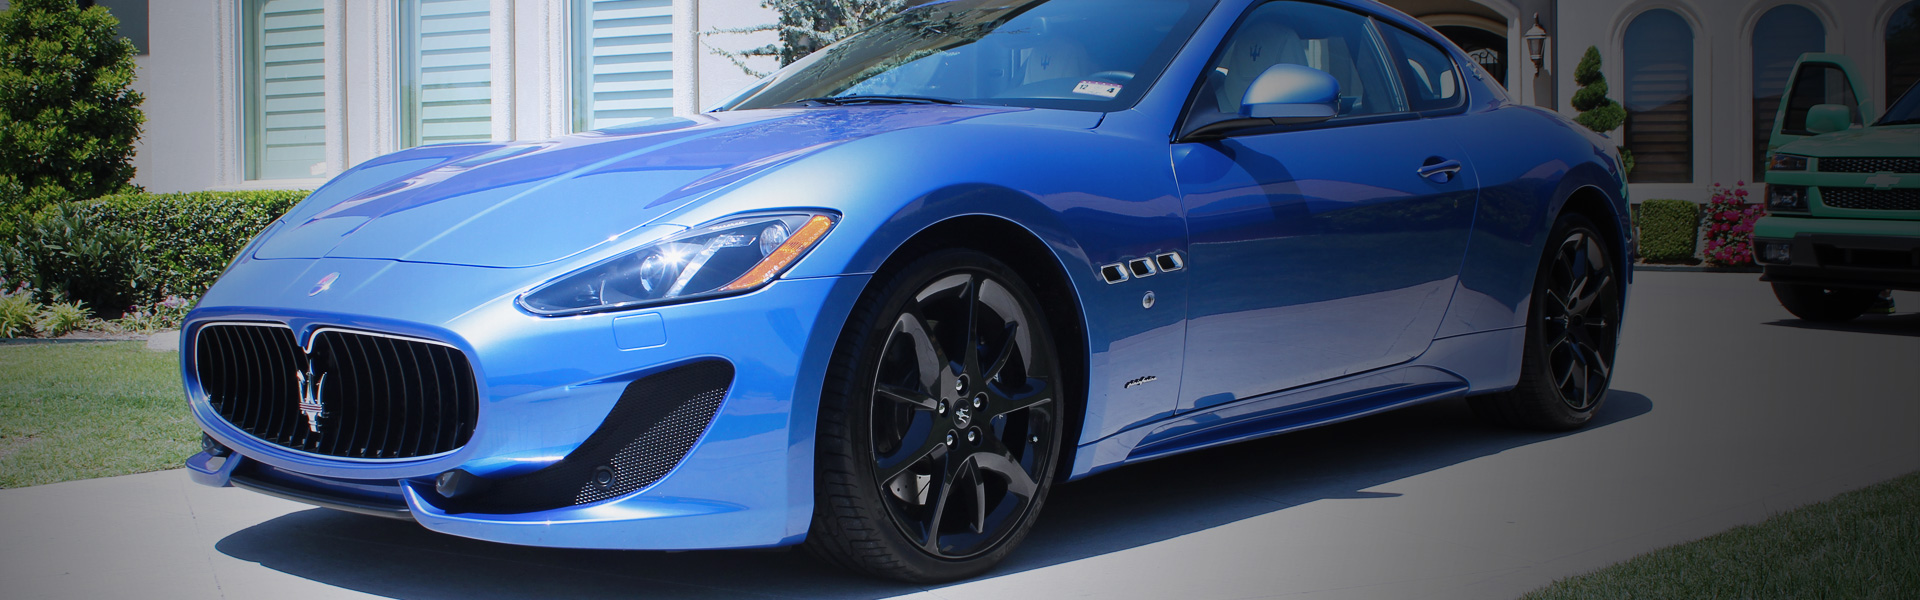 Picture of a Maserati Gran Turismo in EcoGreen's rotating banner